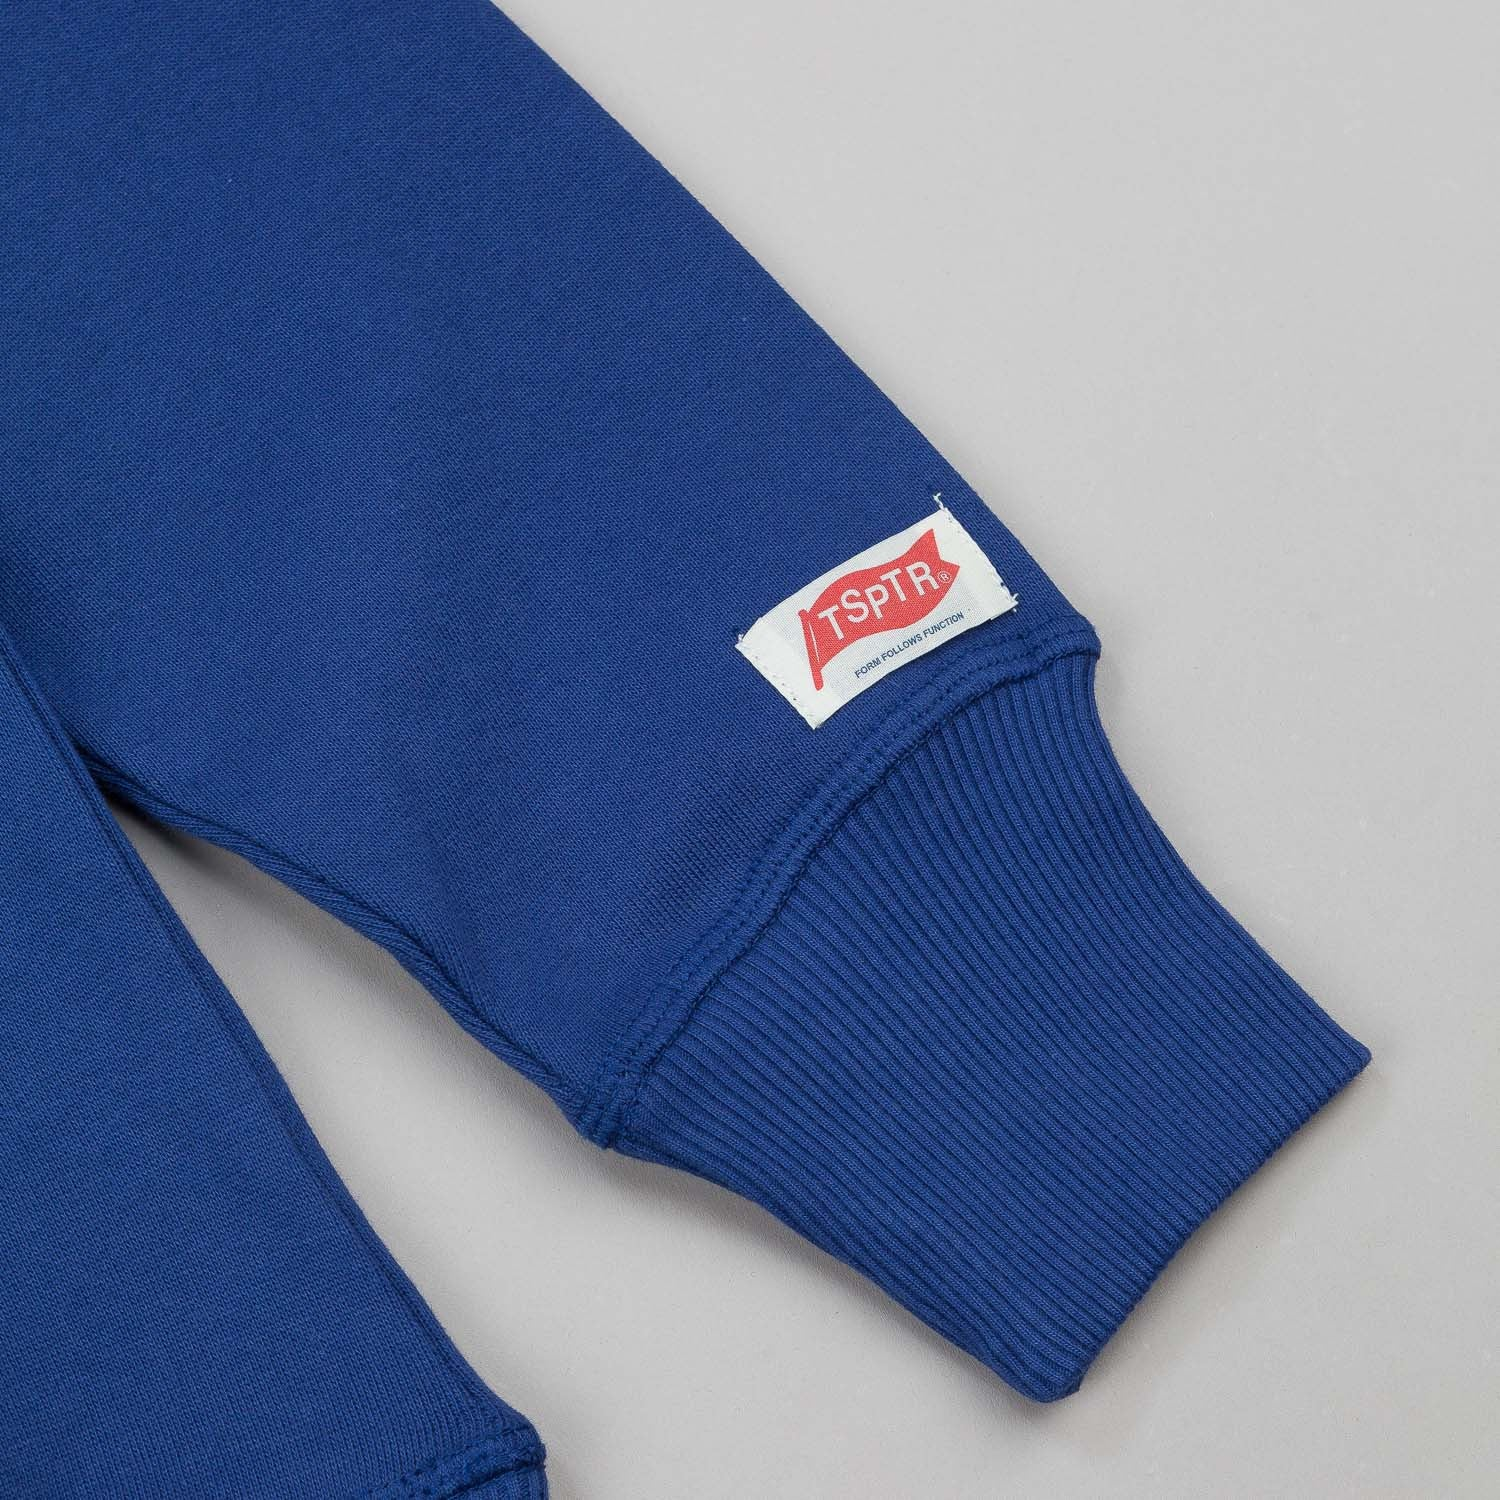 TSPTR Surf's Up Crew Neck Sweatshirt - Royal Blue